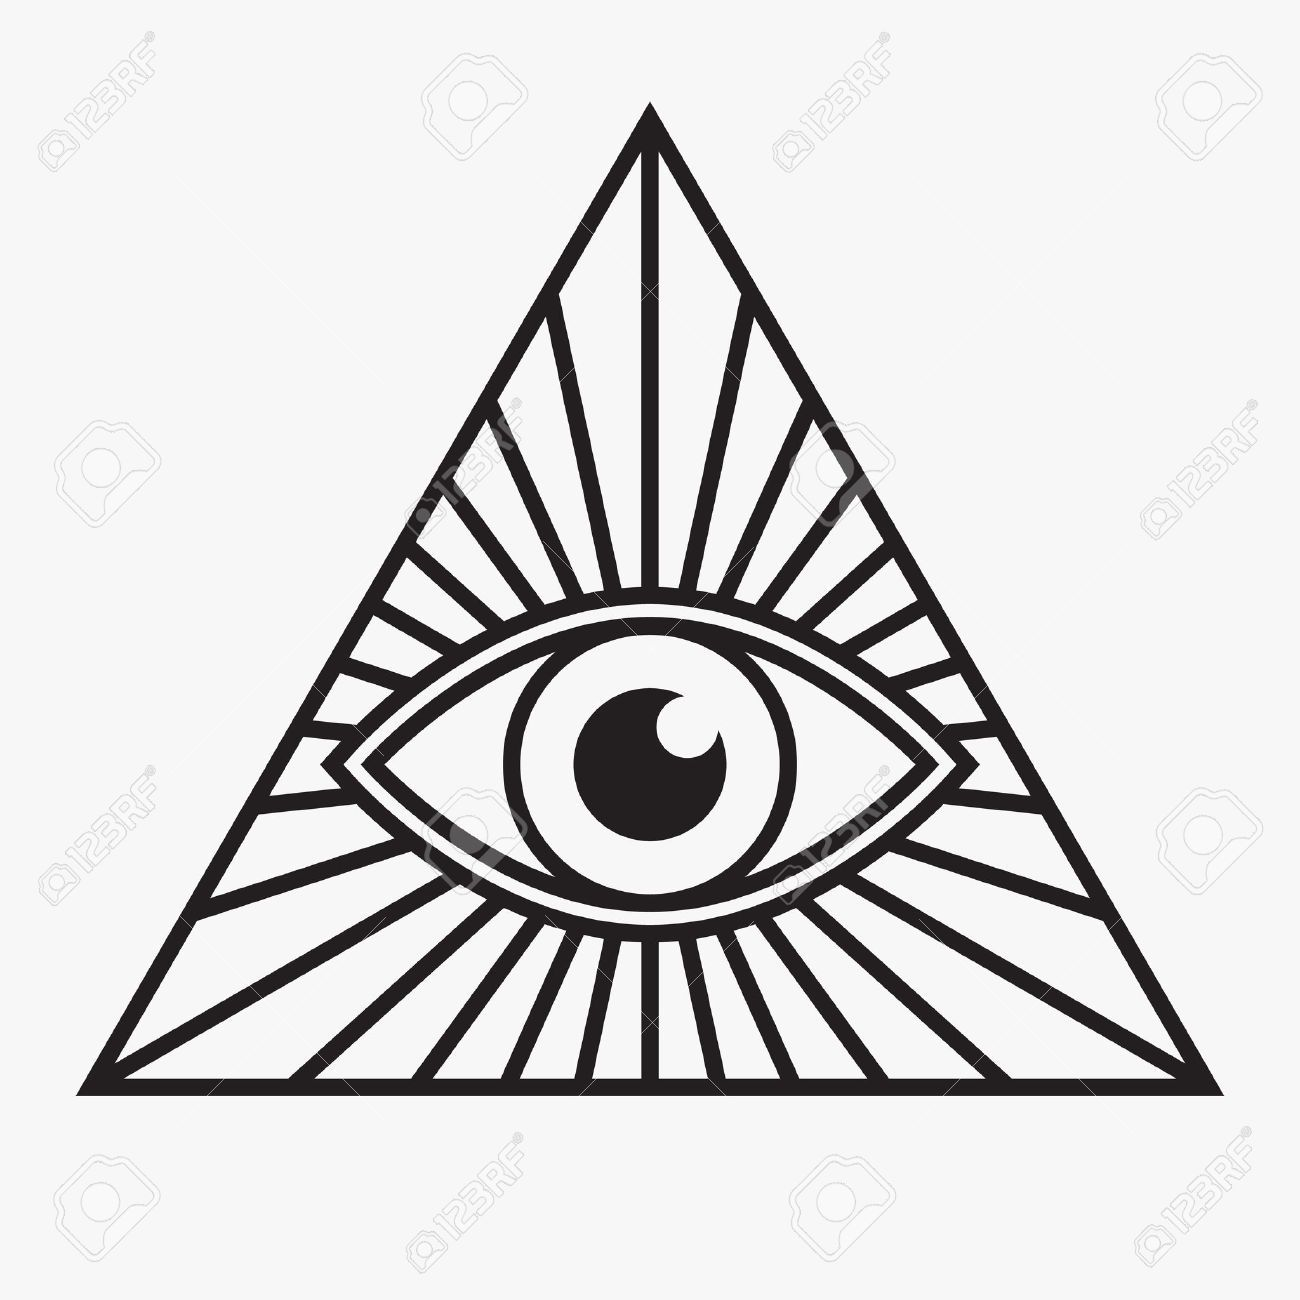 all seeing eye symbol vector illustration tattoo pinterest rh pinterest com eye of providence vector free Four Leaf Clover Vector